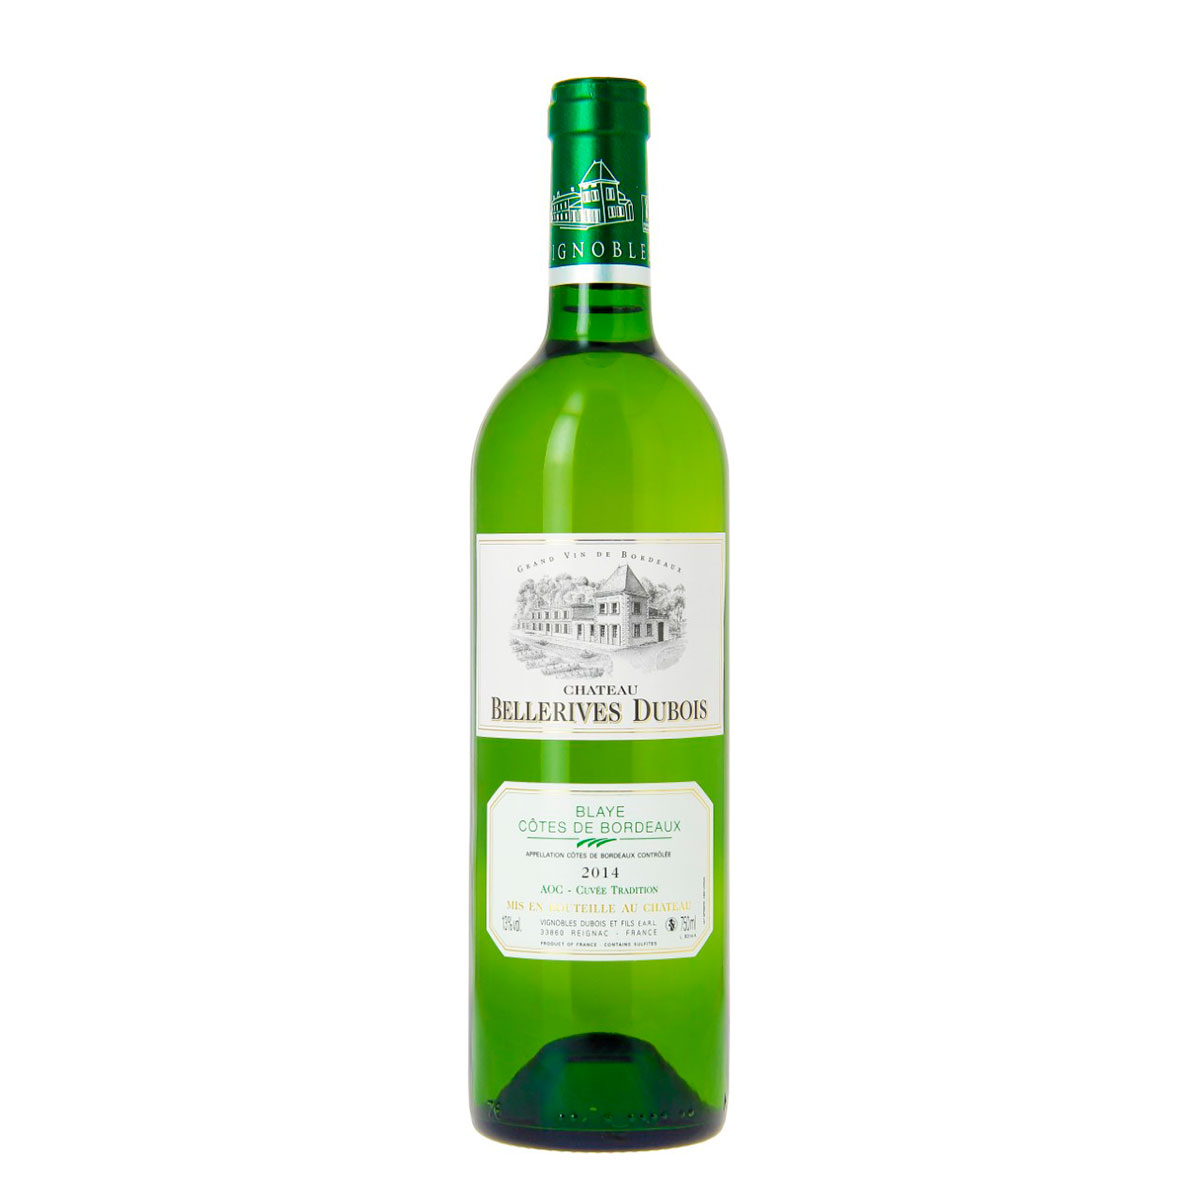 GRAND VIN Chateau Bellerives branco 2018